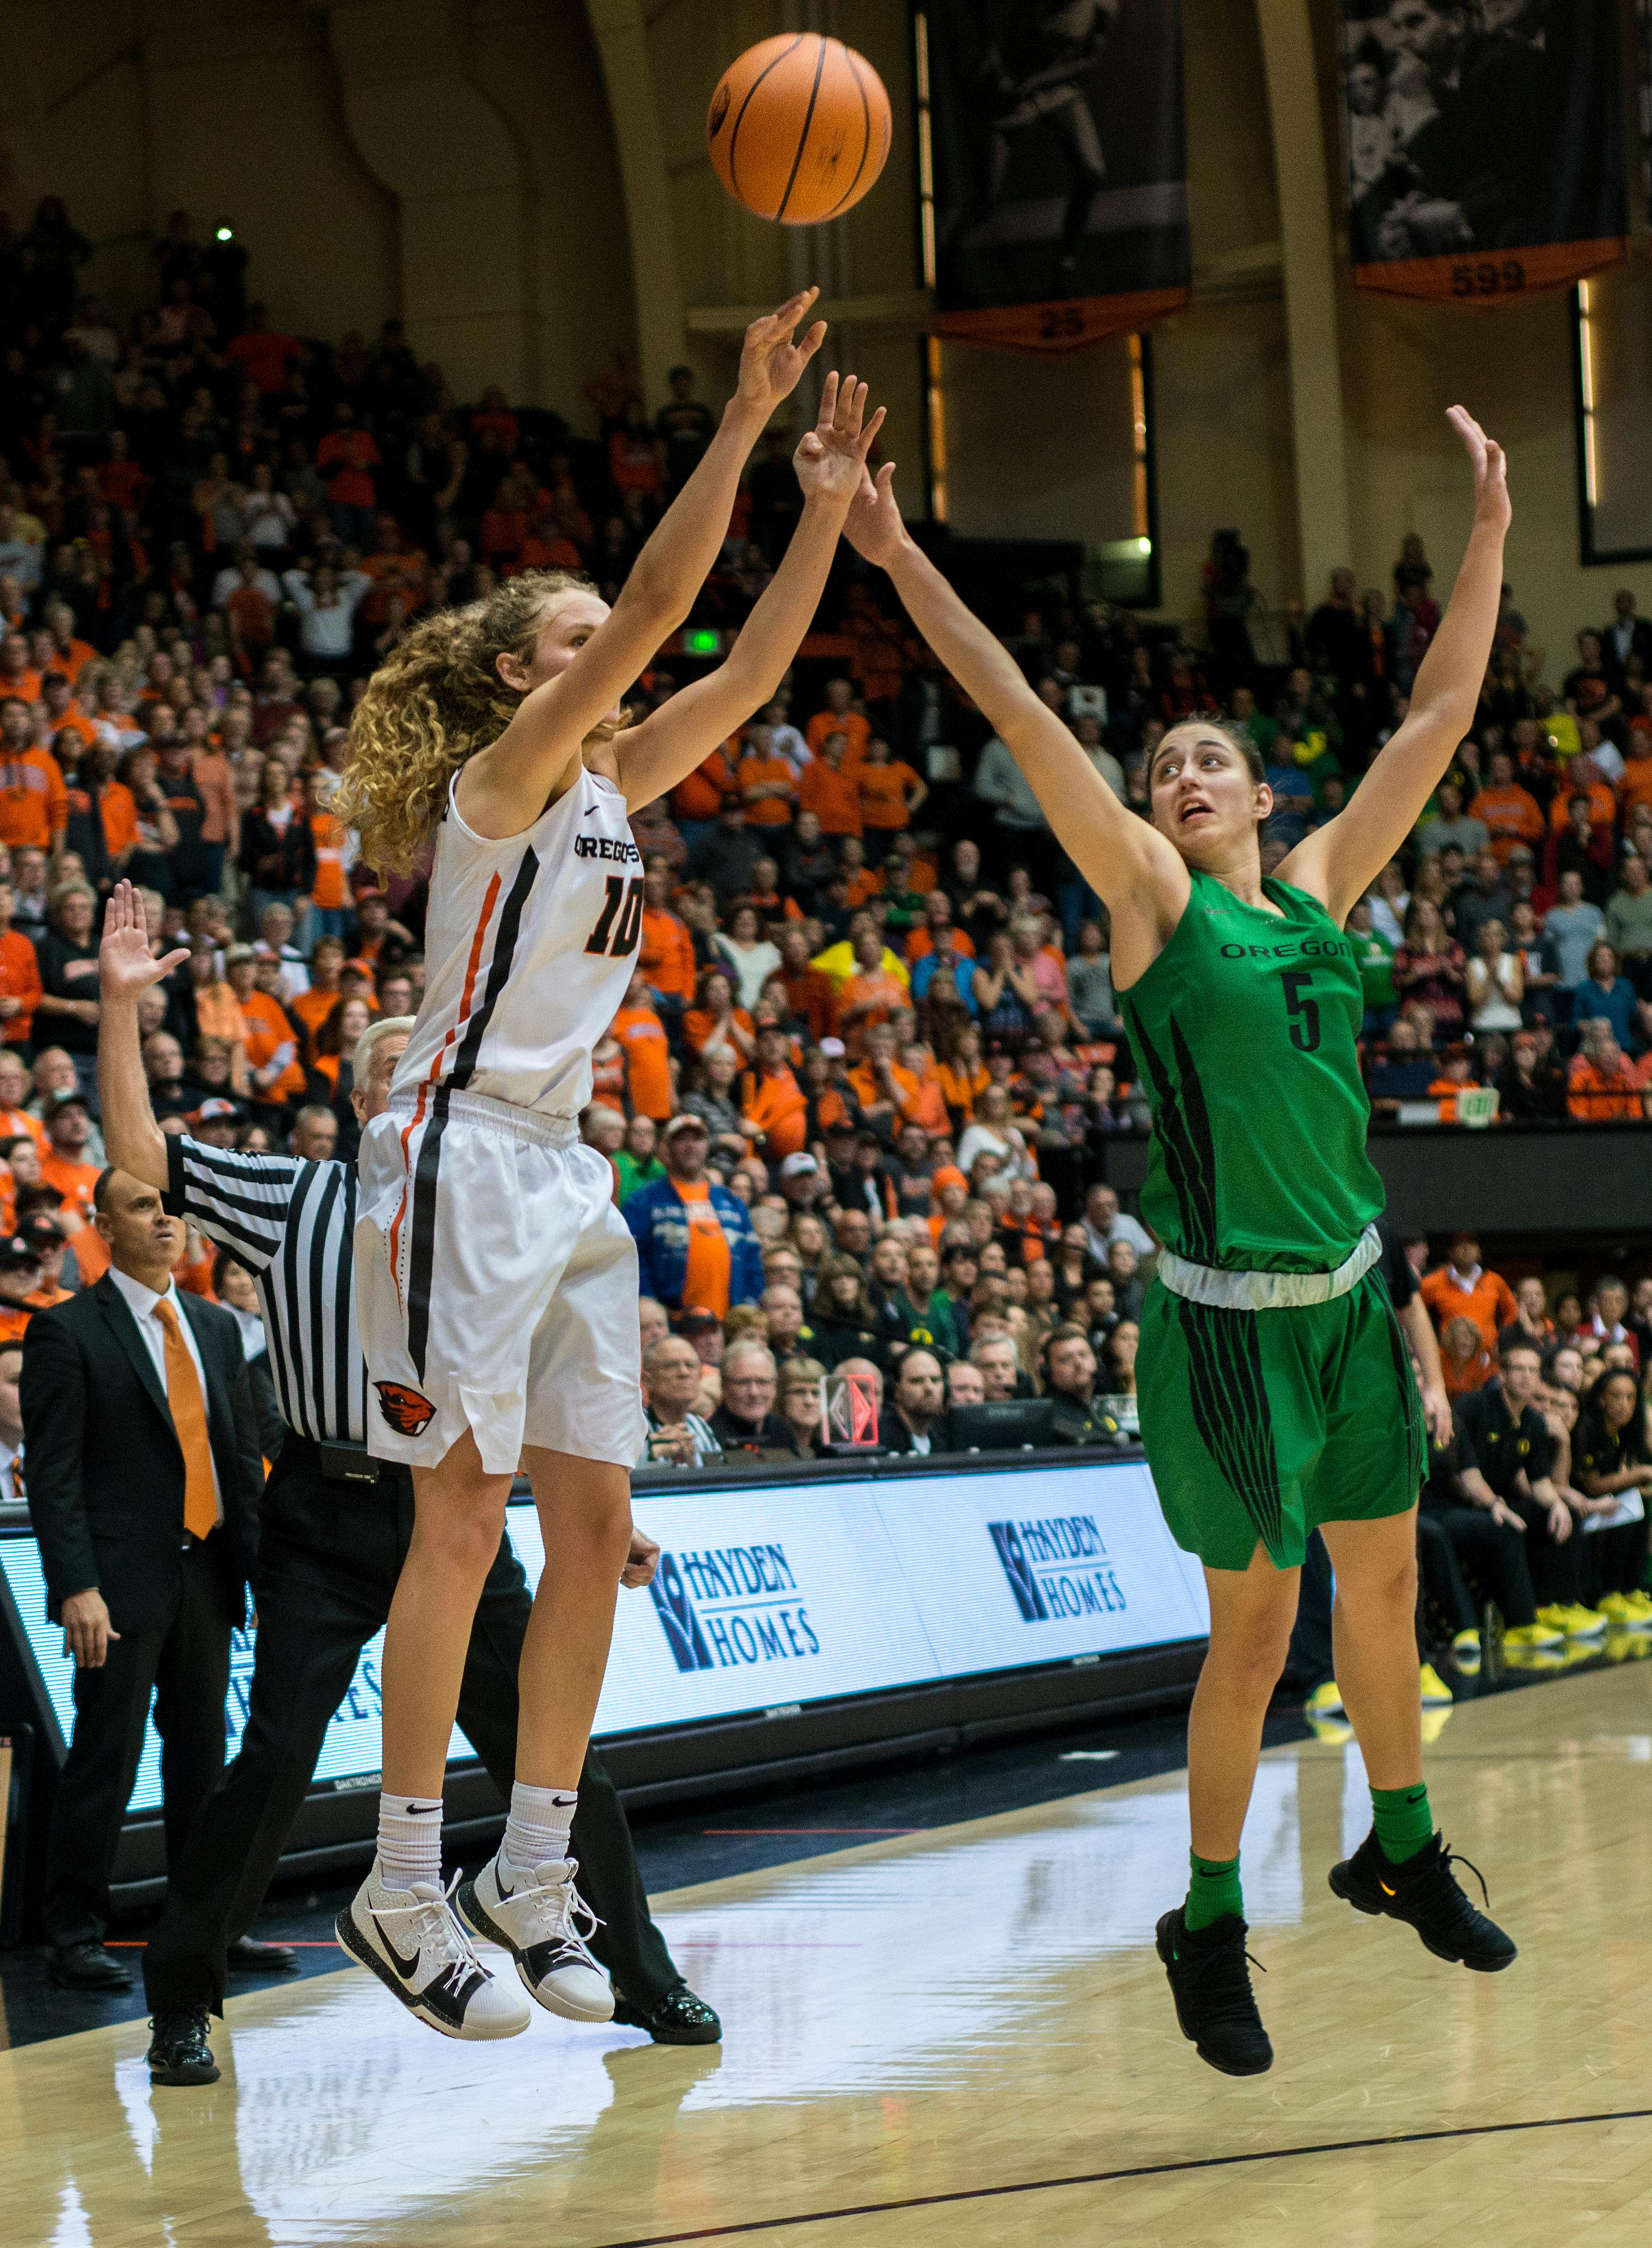 Oregon State Beavers guard Katie McWilliams (#10) shoots as Oregon Ducks guard Maite Cazorla (#5) leaps to block.The Oregon Ducks were defeated by the Oregon State Beavers 85-79 on Friday night in Corvallis. Sabrina Ionescu scored 35 points and Ruthy Hebard added 24. The Ducks will face the Beavers this Sunday at 5 p.m. at Matthew Knight Arena. Photo by Abigail Winn, Oregon News Lab